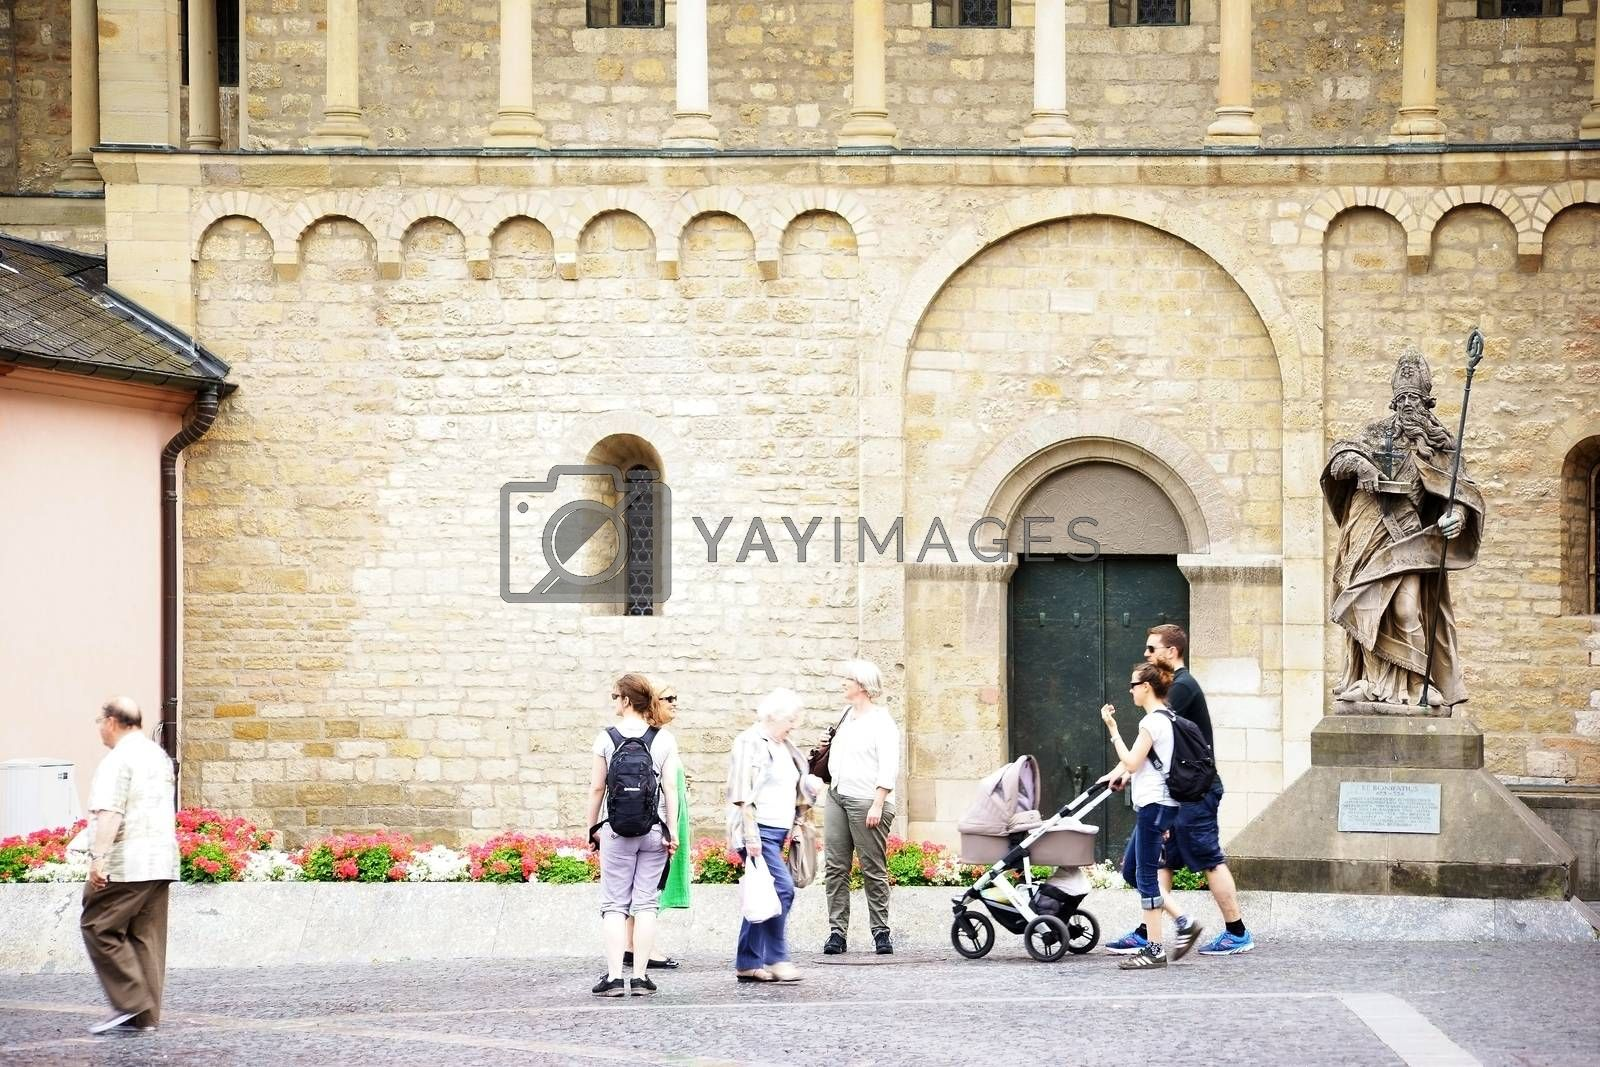 Mainz, Germany - June 25, 2015: Families and tourists passing the sculpture of St. Boniface in front of the Mainz Cathedral with flowerbeds on June 25, 2015 in Mainz.